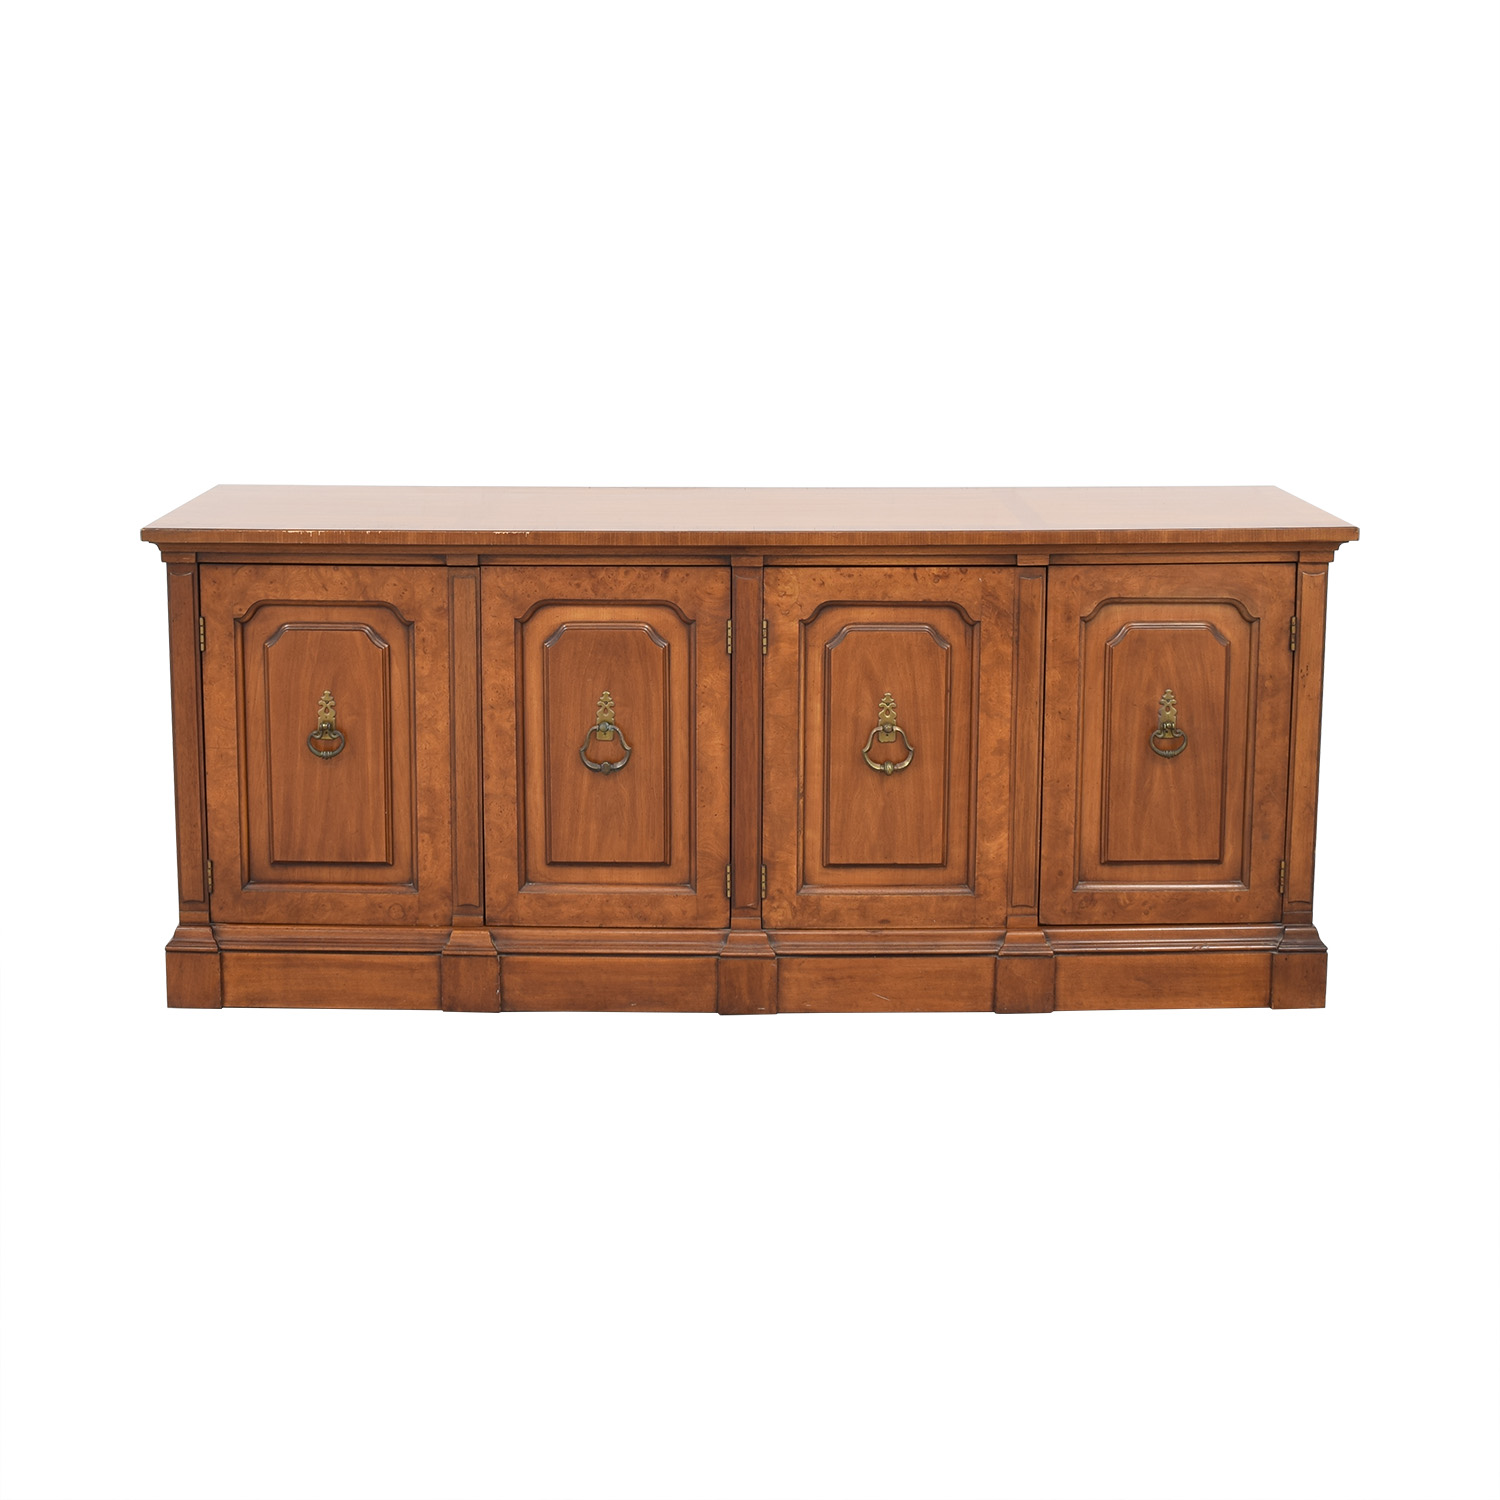 Drexel Heritage Drexel Heritage Repertoire Collection Credenza dimensions